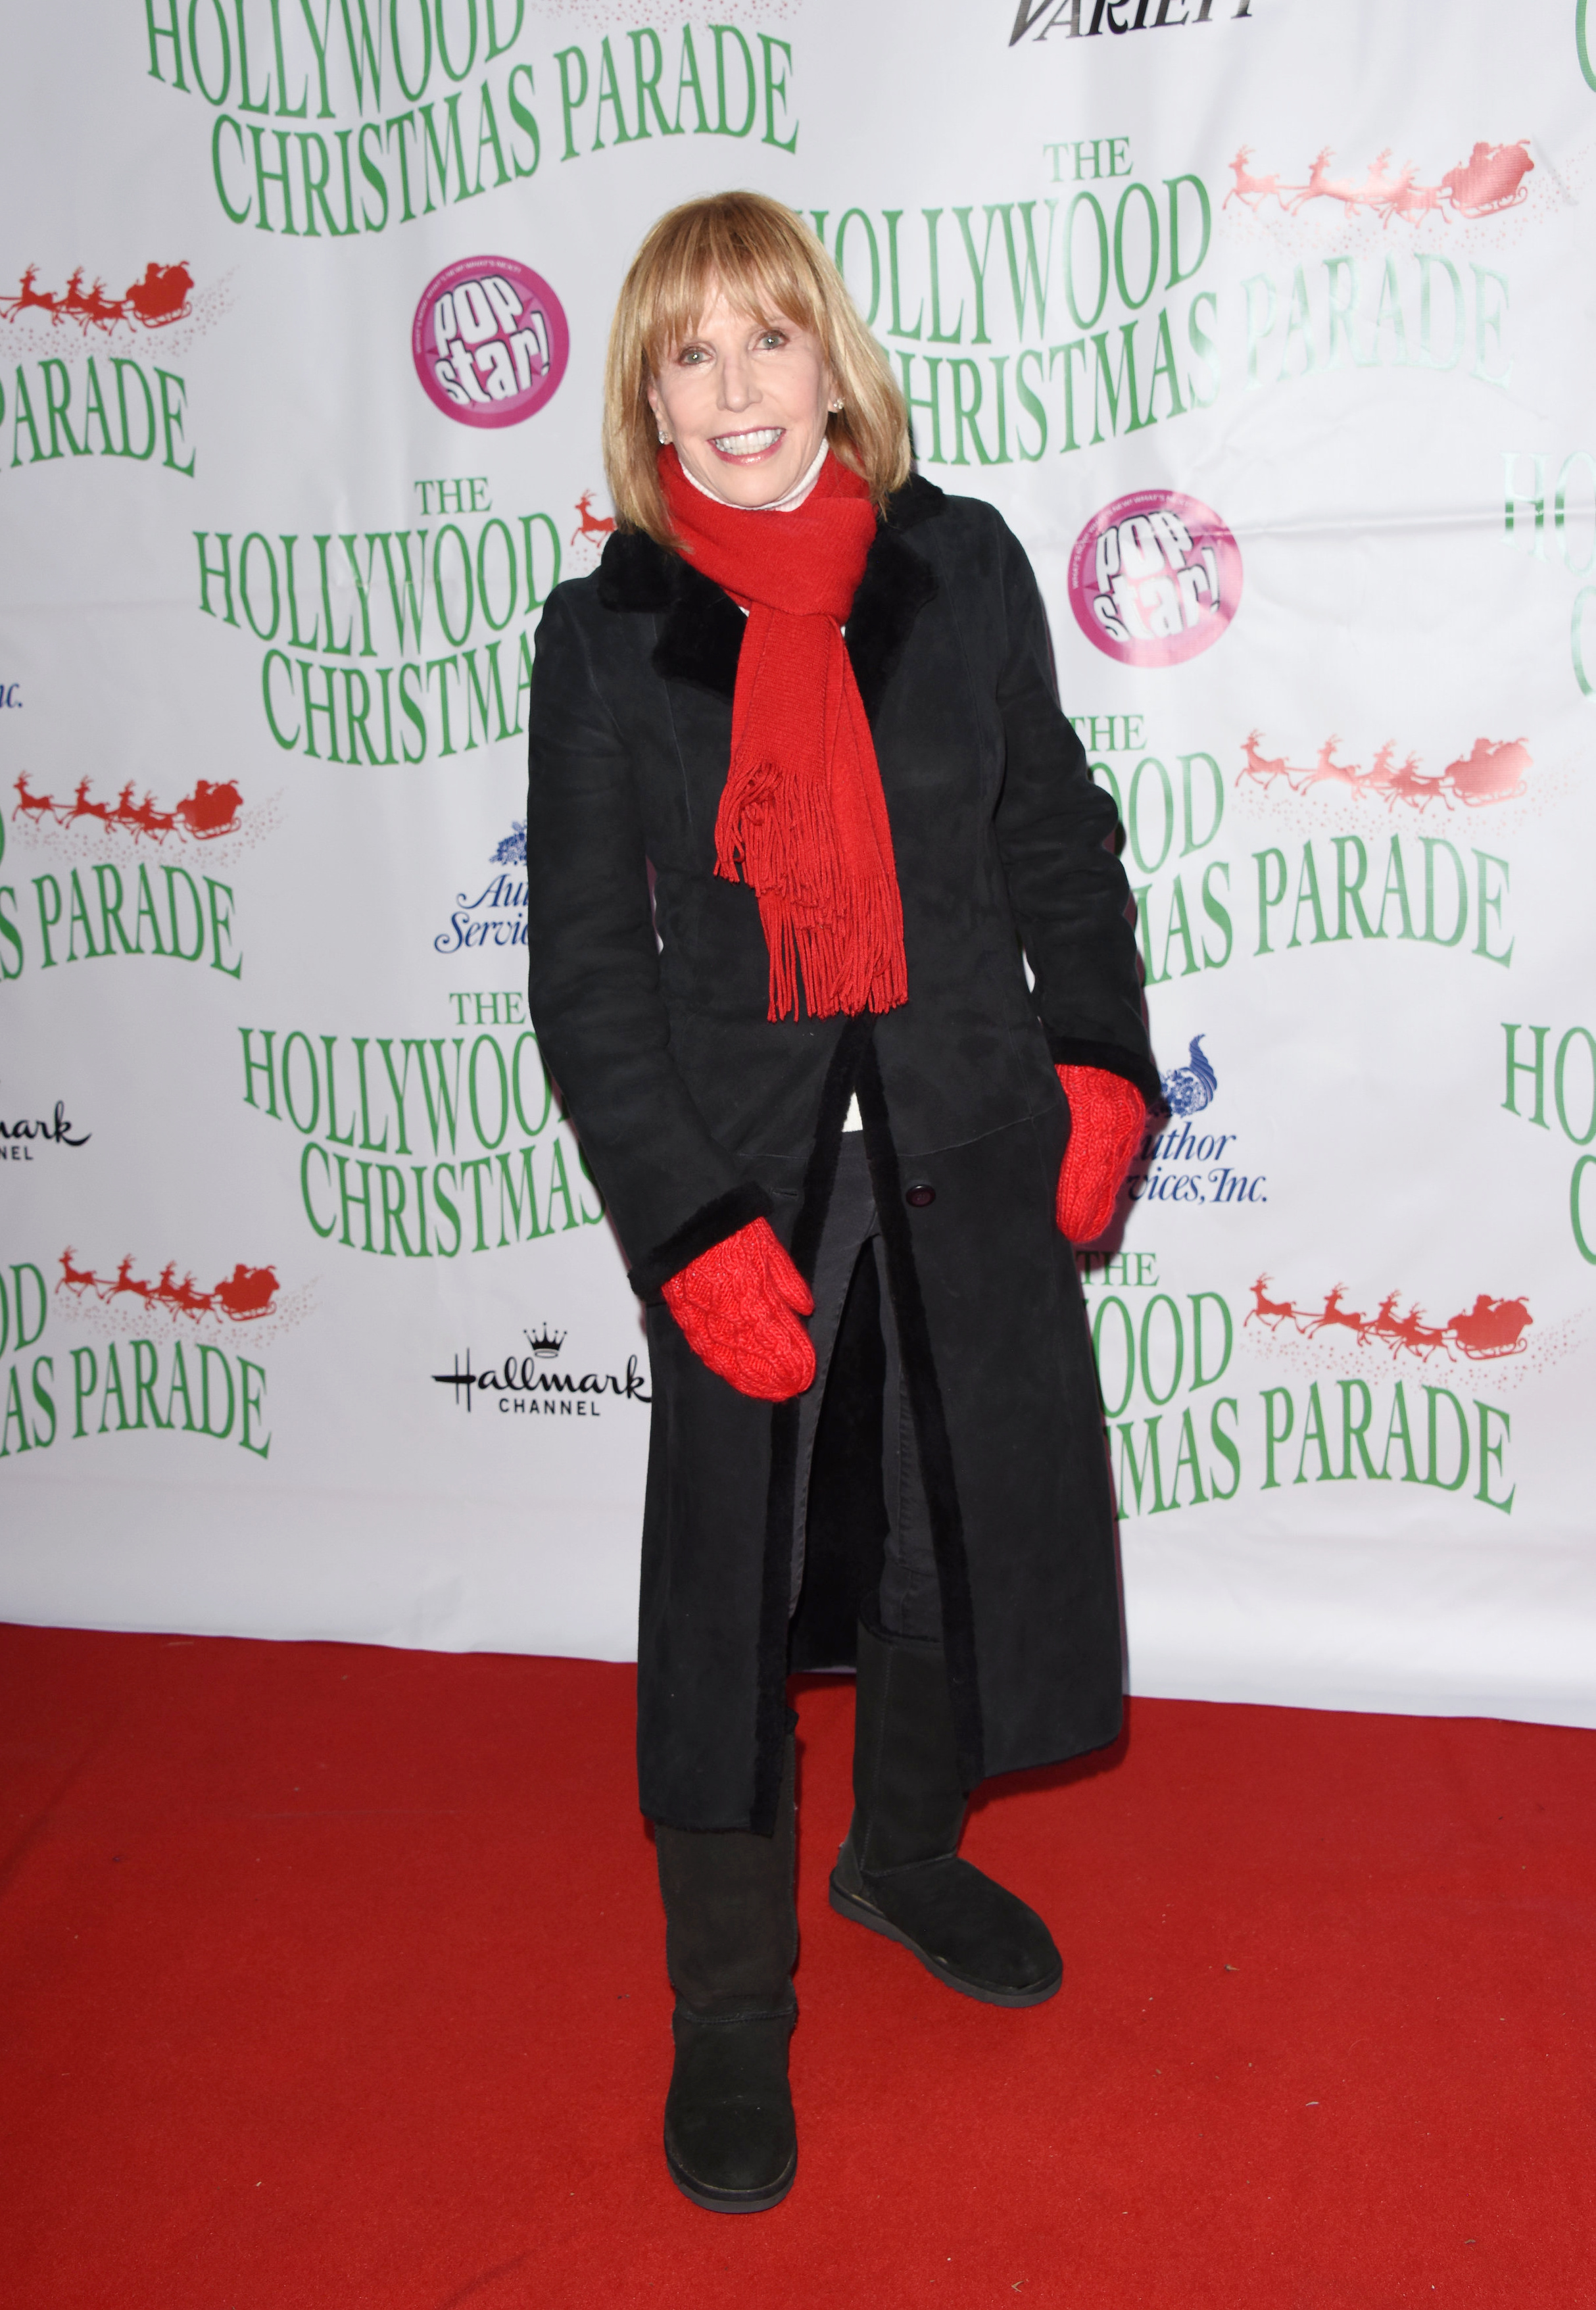 Leslie Charleson attends the 88th annual Hollywood Christmas Parade on December 01, 2019 in Hollywood, California© Jill Johnson/jpistudios.com310-657-9661